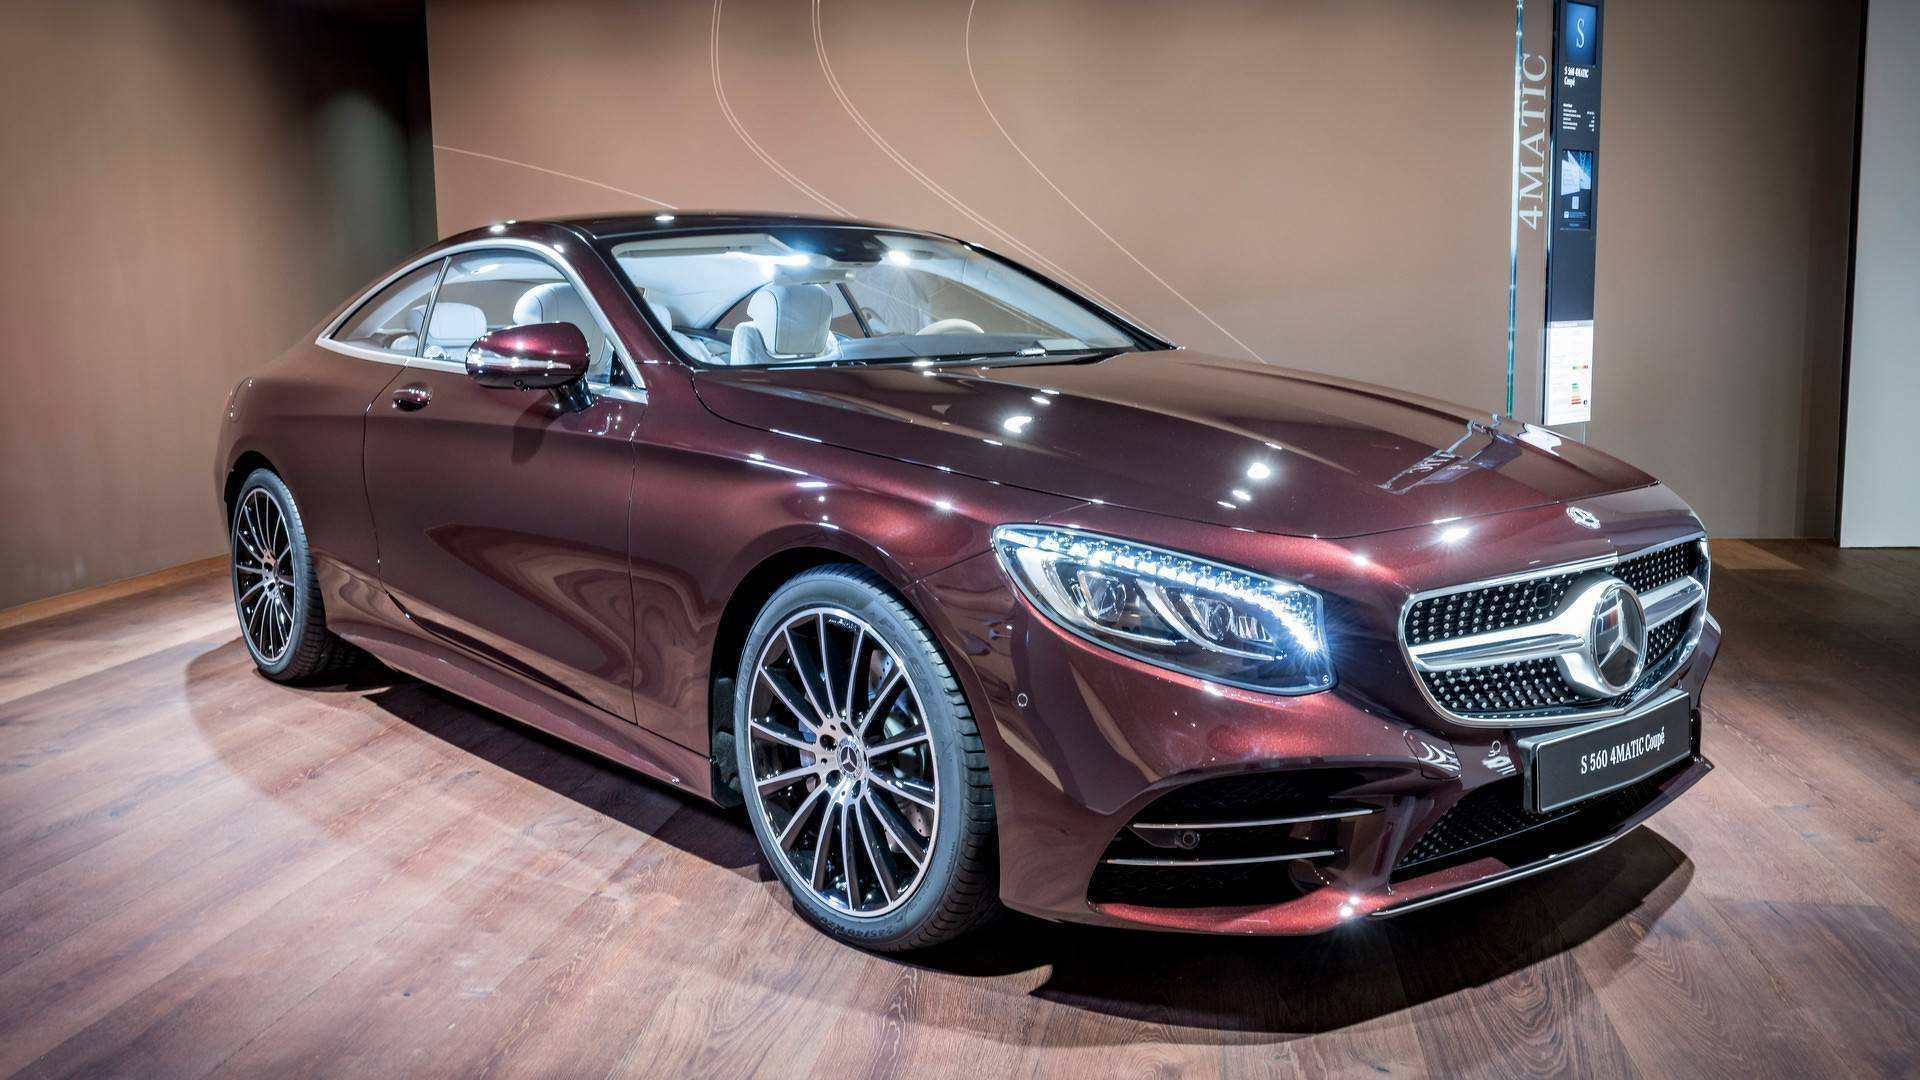 51 Best Review Mercedes S Class Coupe 2019 Configurations with Mercedes S Class Coupe 2019